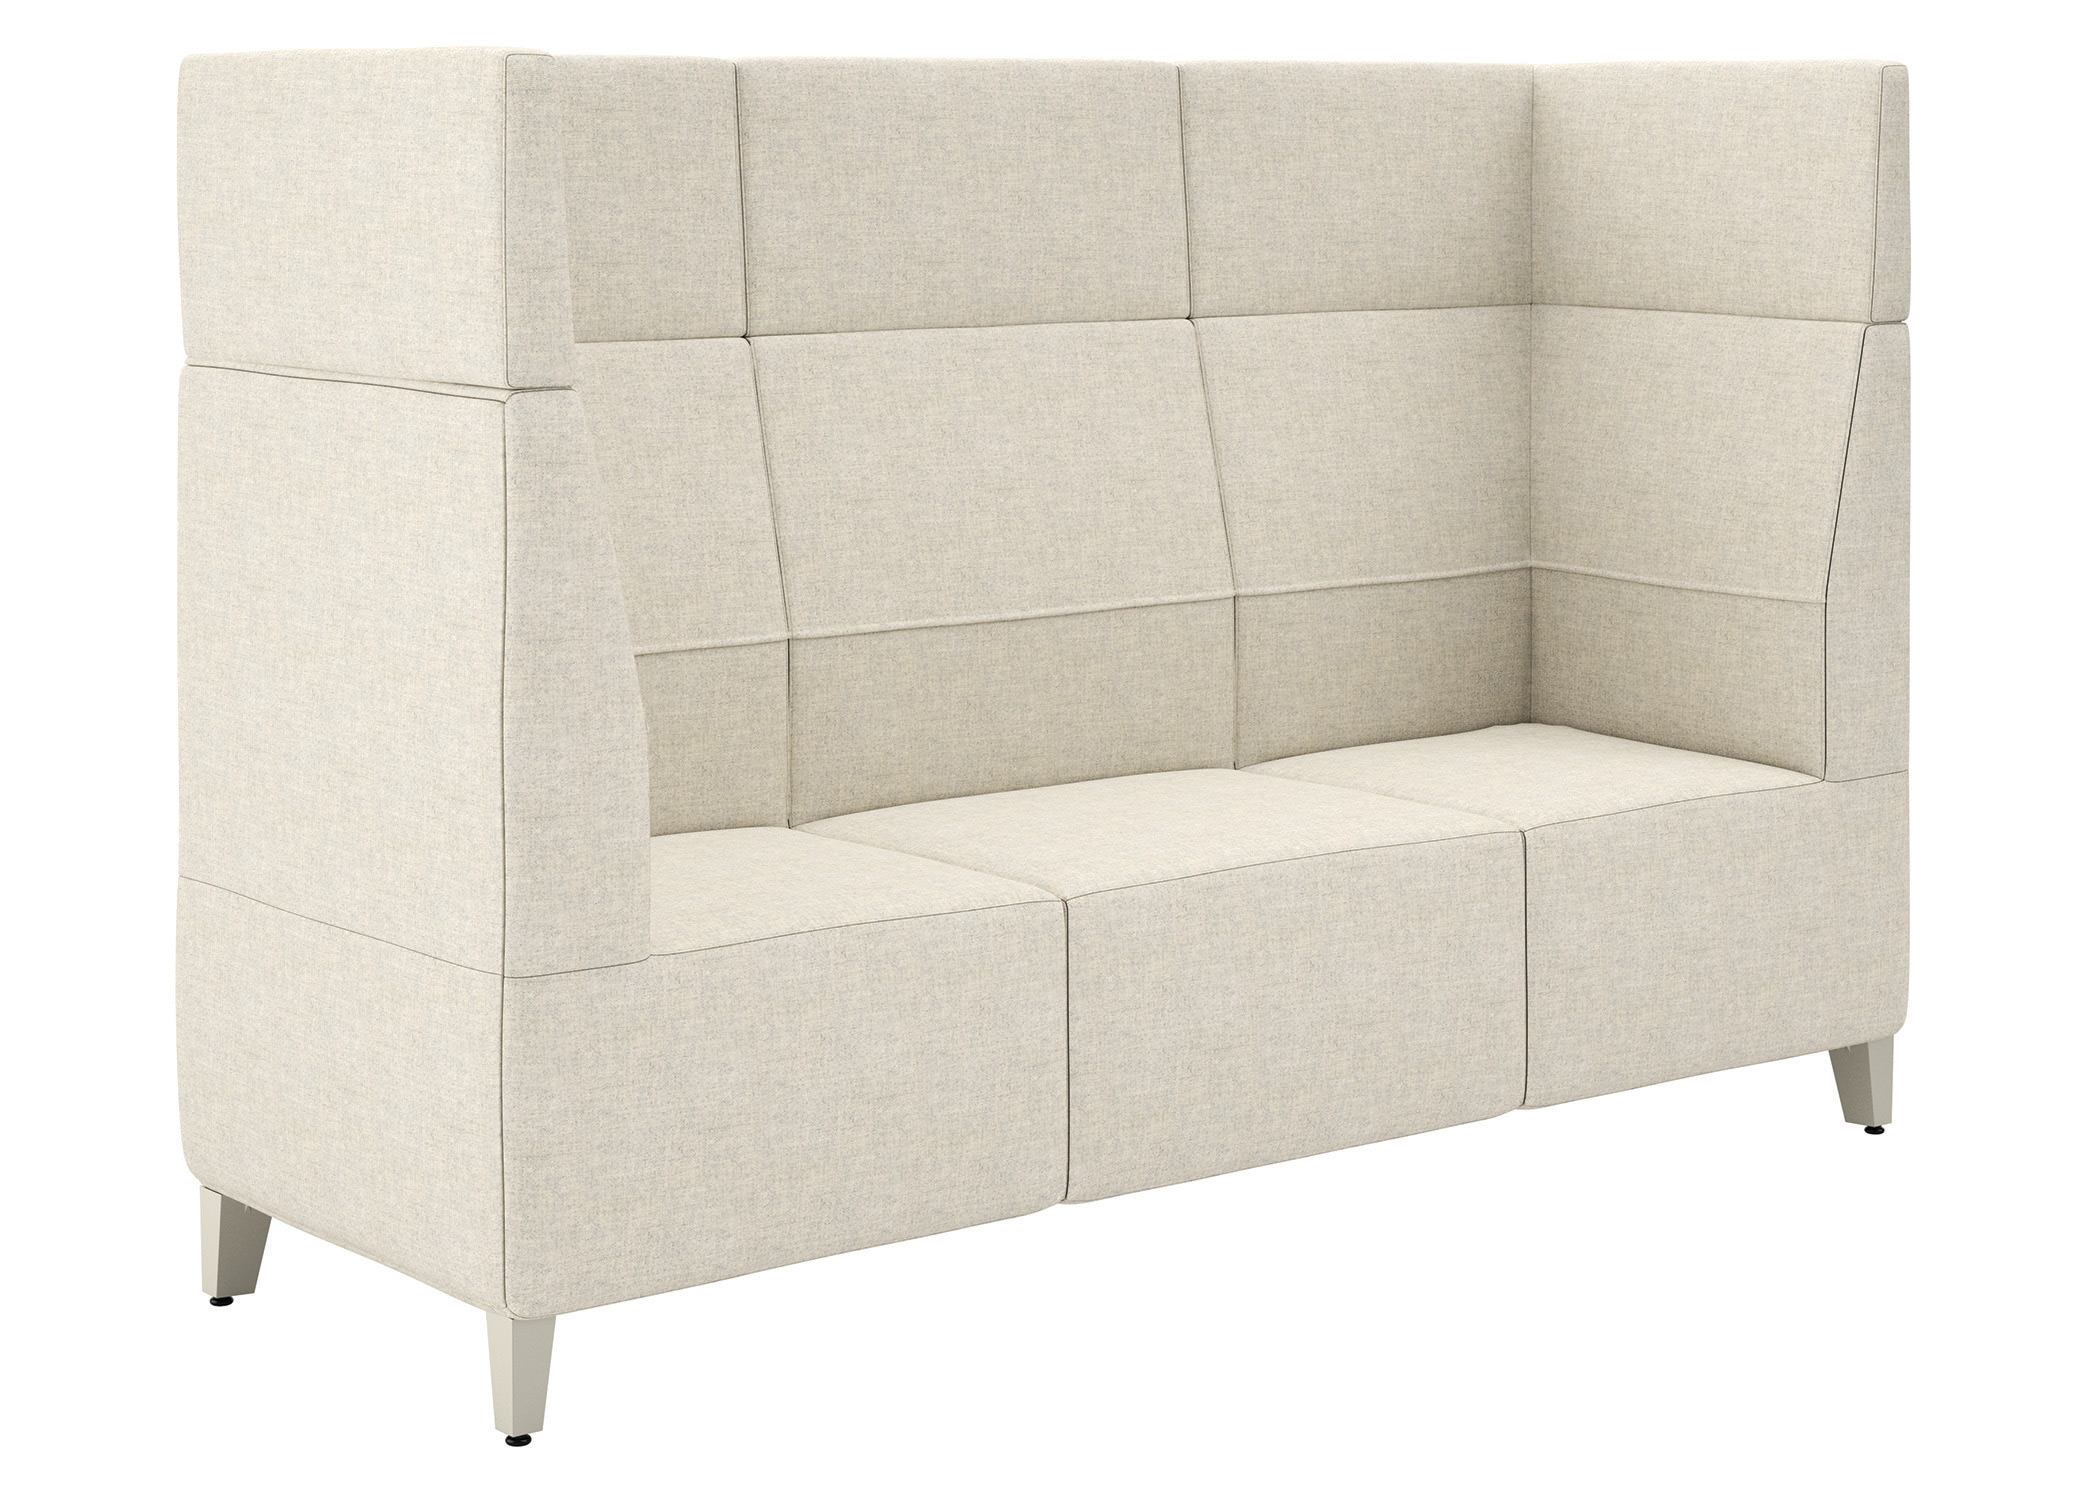 modern cabriole sofa small leather beds fringe i would love to have a with on the ...